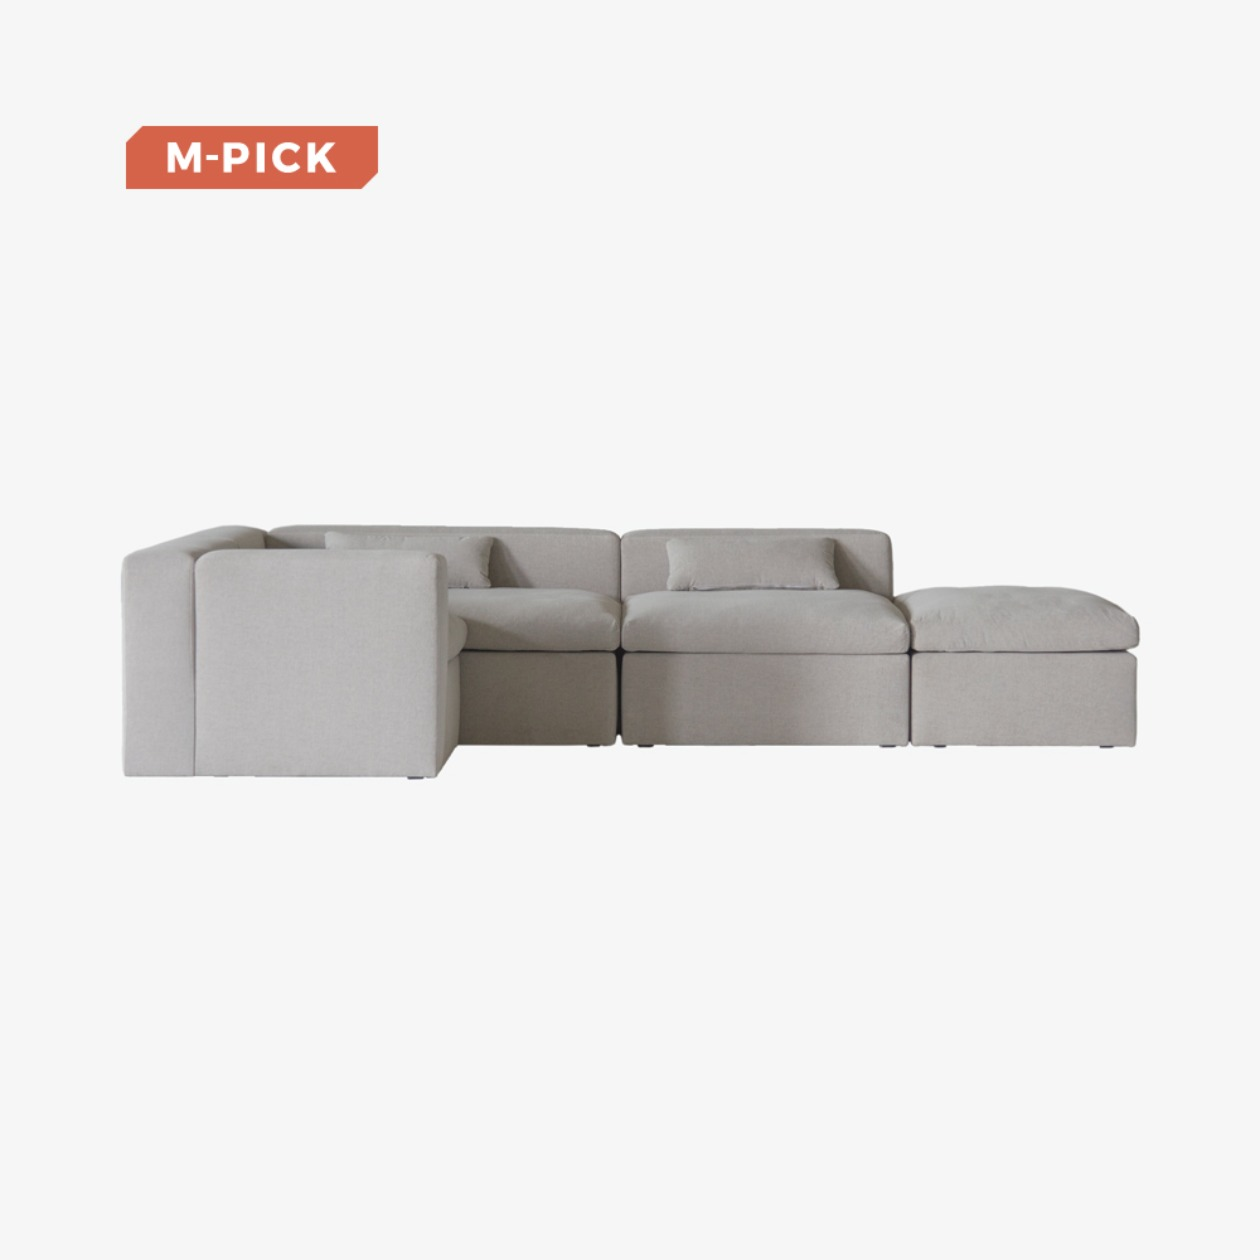 TIMELESS SOFA SOFT A+B+C+D